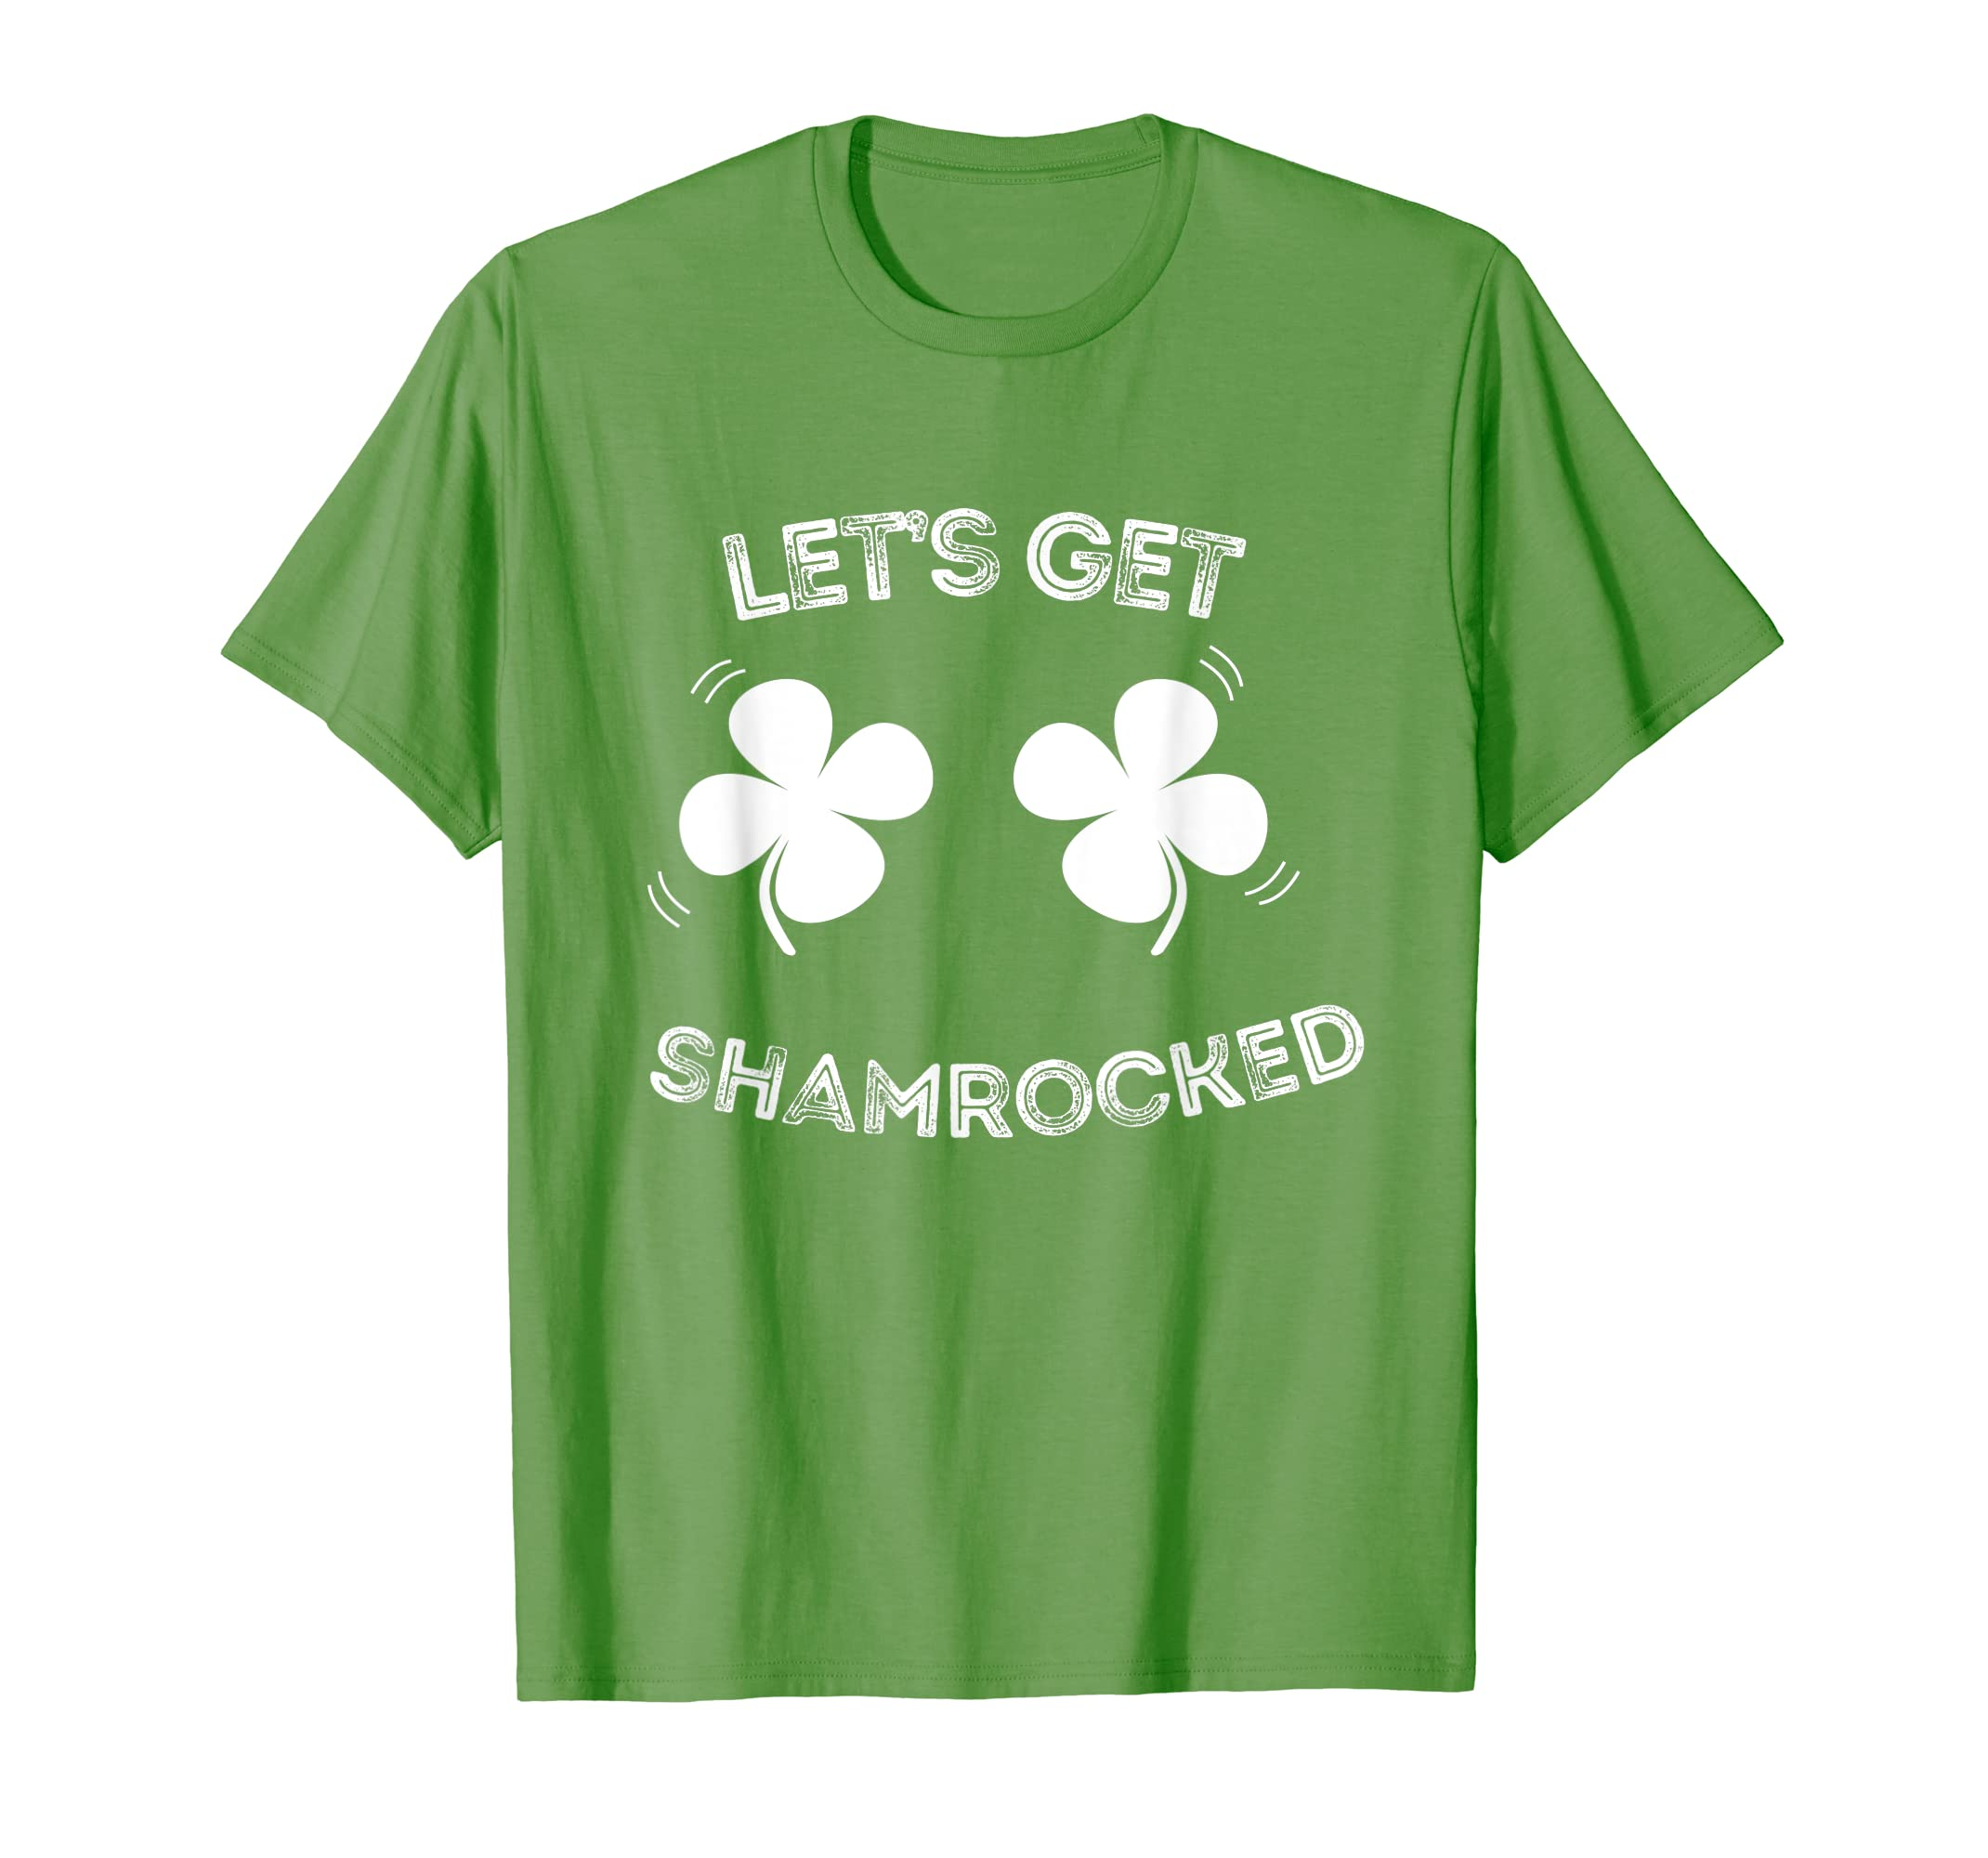 e8427afb6 Amazon.com: Let's Get Shamrocked Paddy's Day Tee Funny Drinking T-Shirt:  Clothing